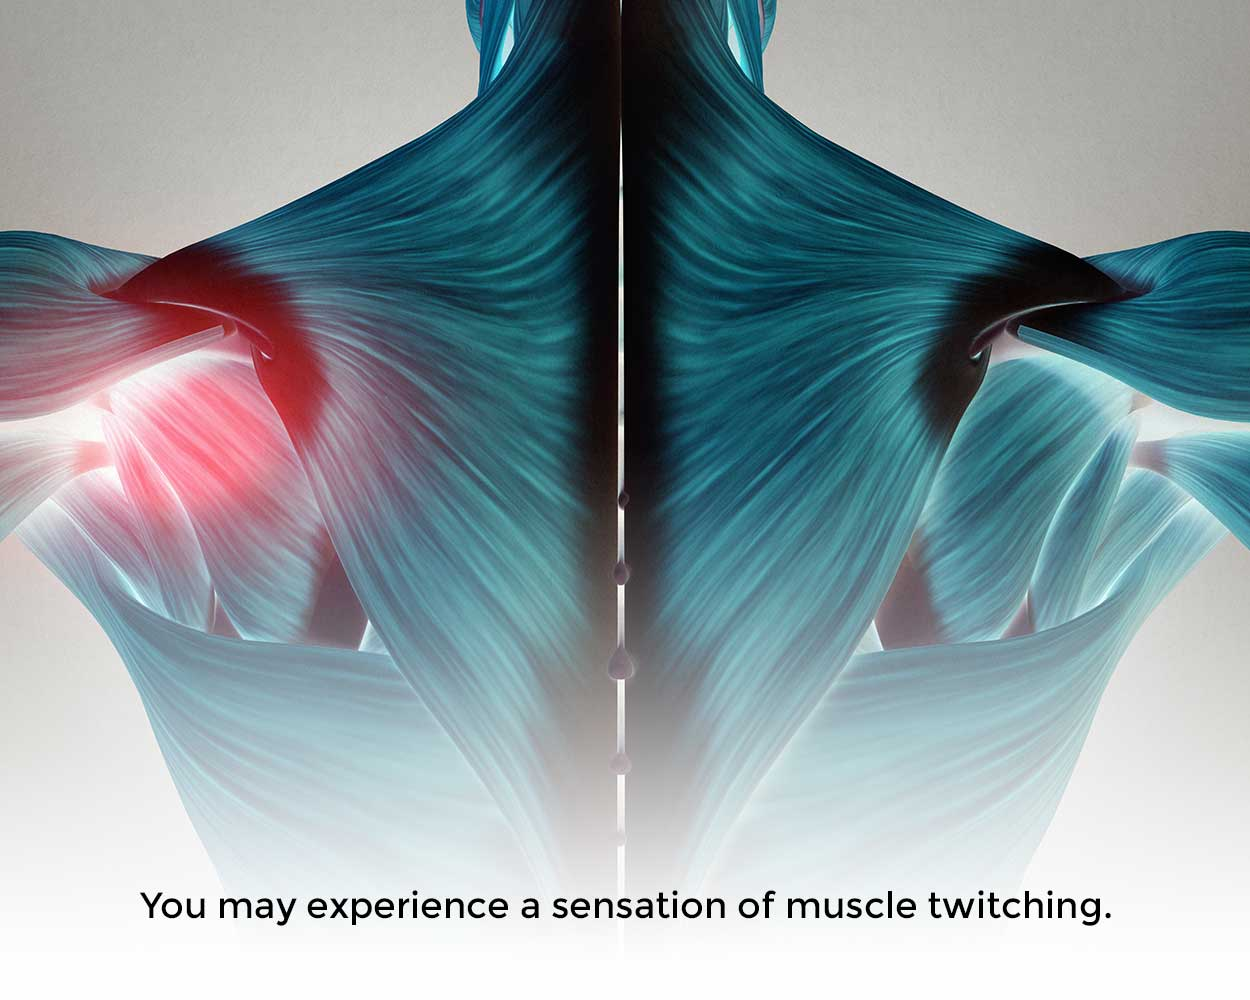 You may experience a sensation of muscle twitching.